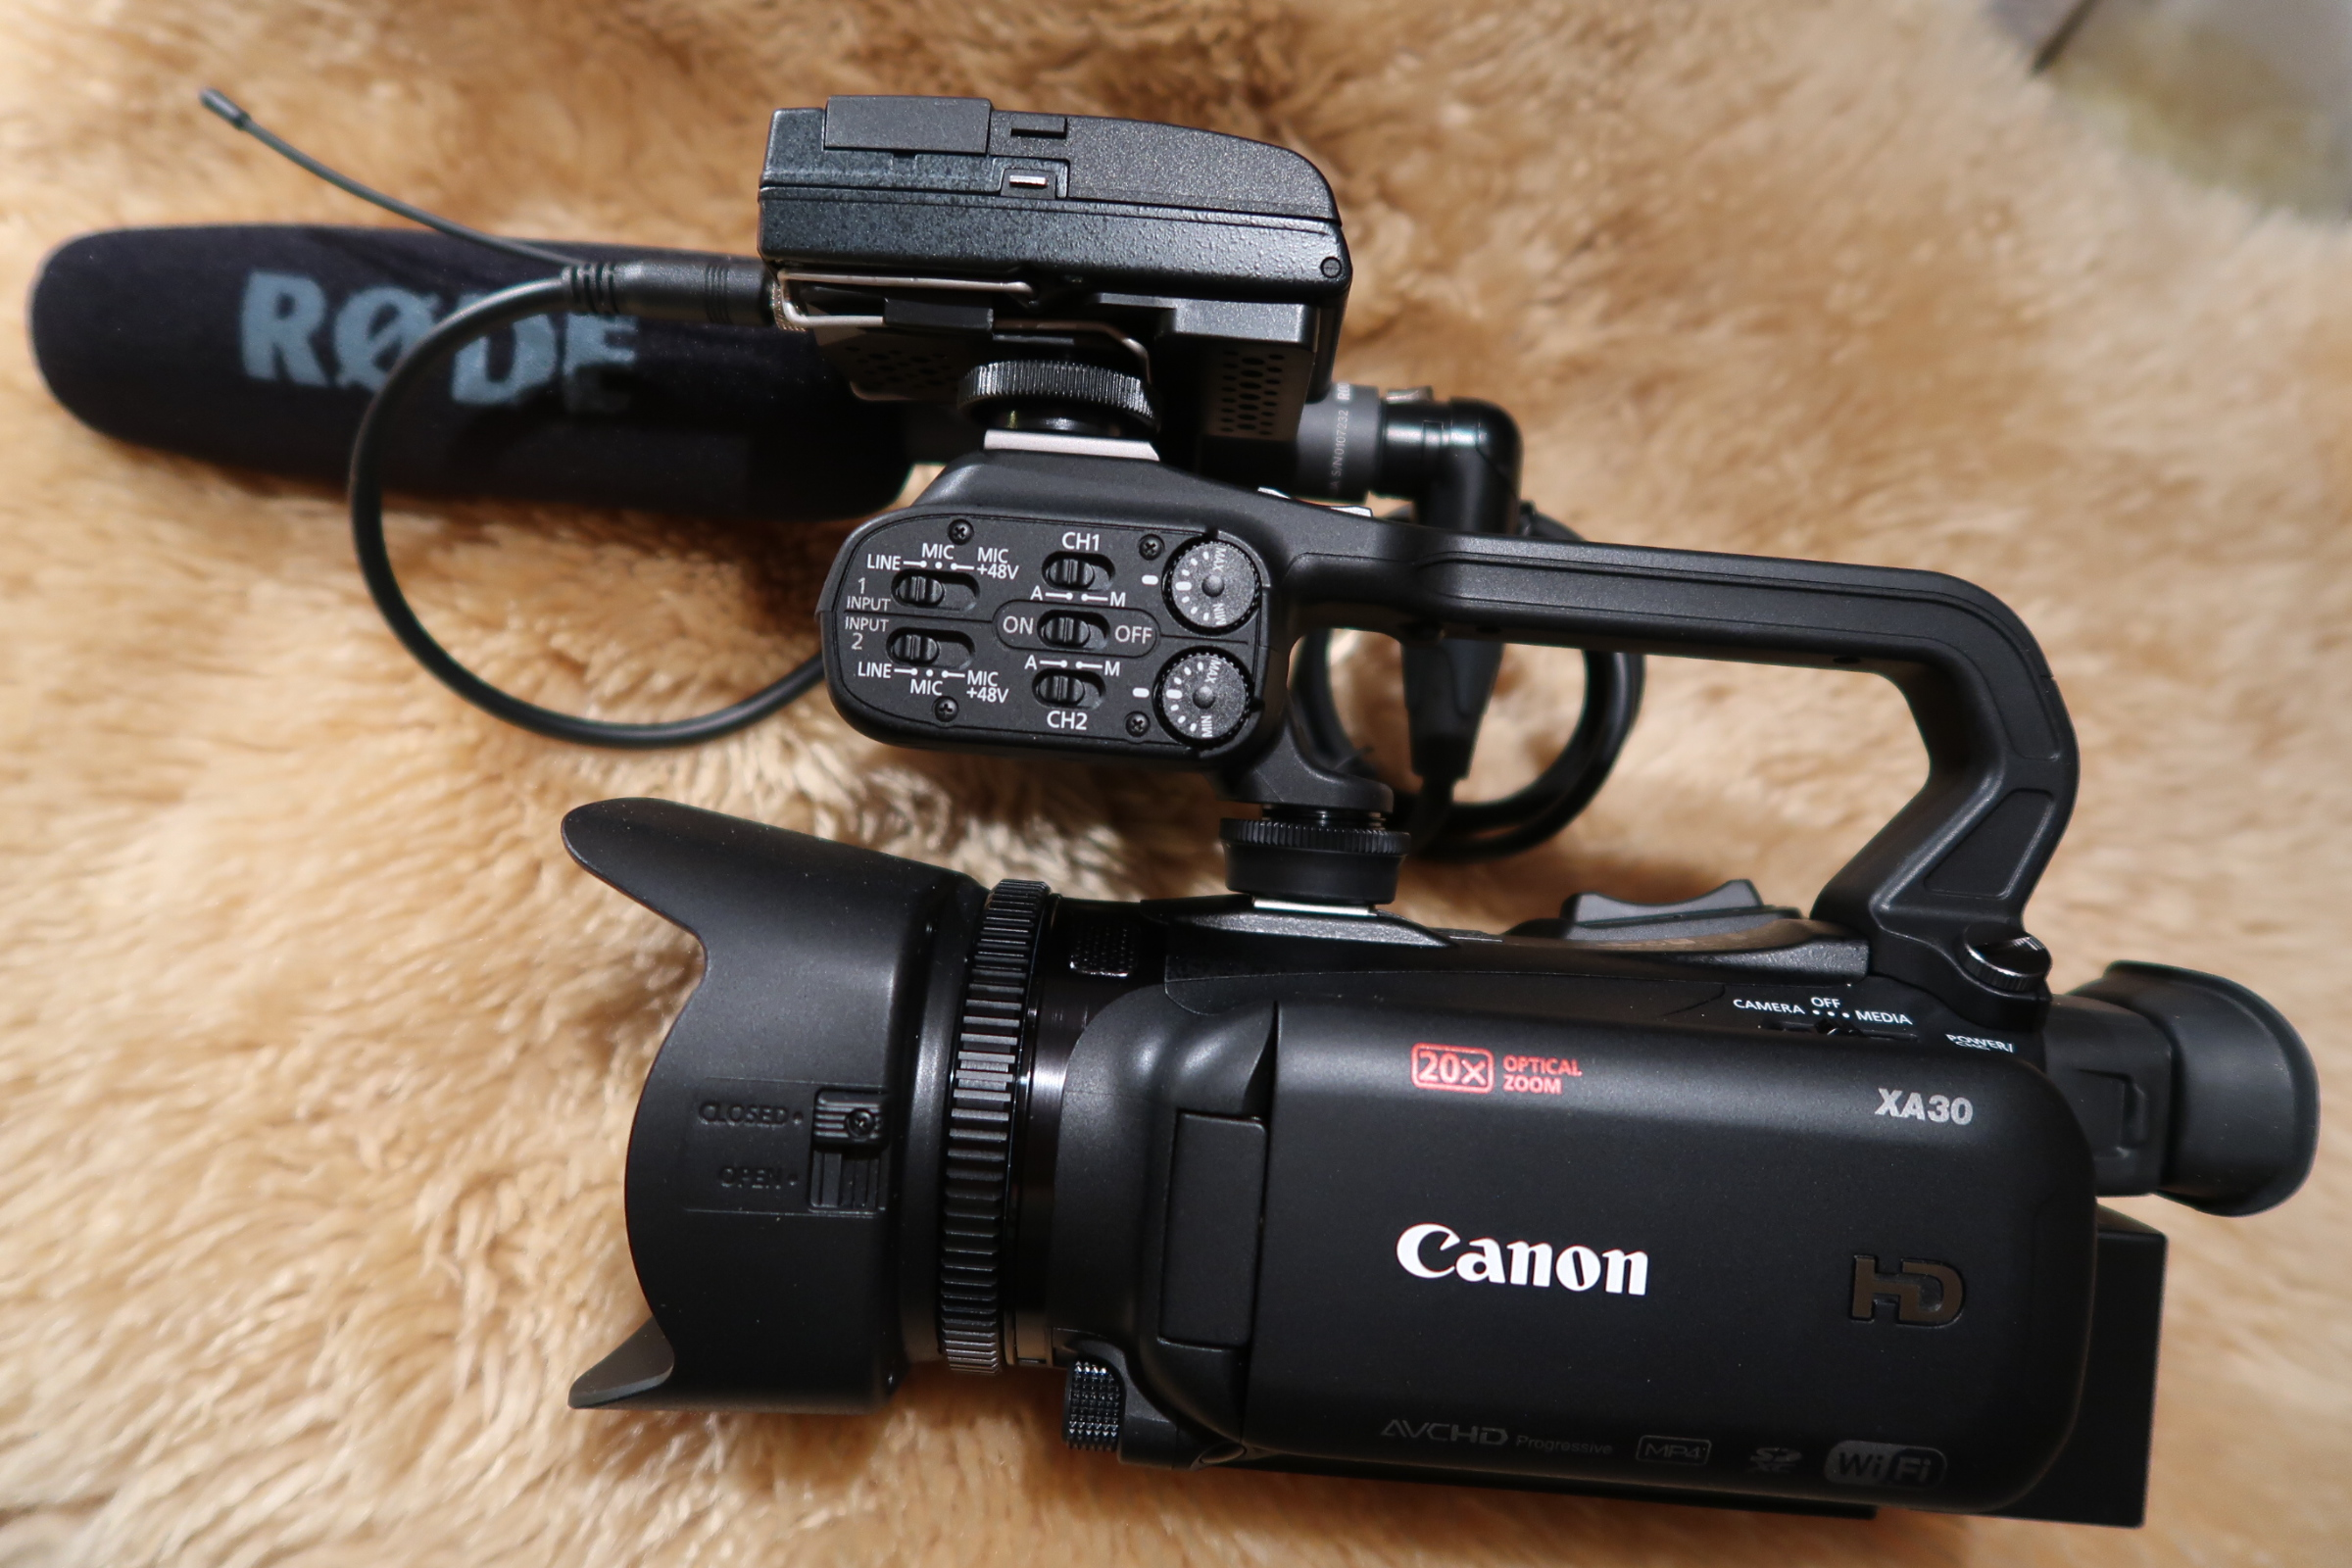 My new main shooting camera one model network then the show Alone was filmed on.